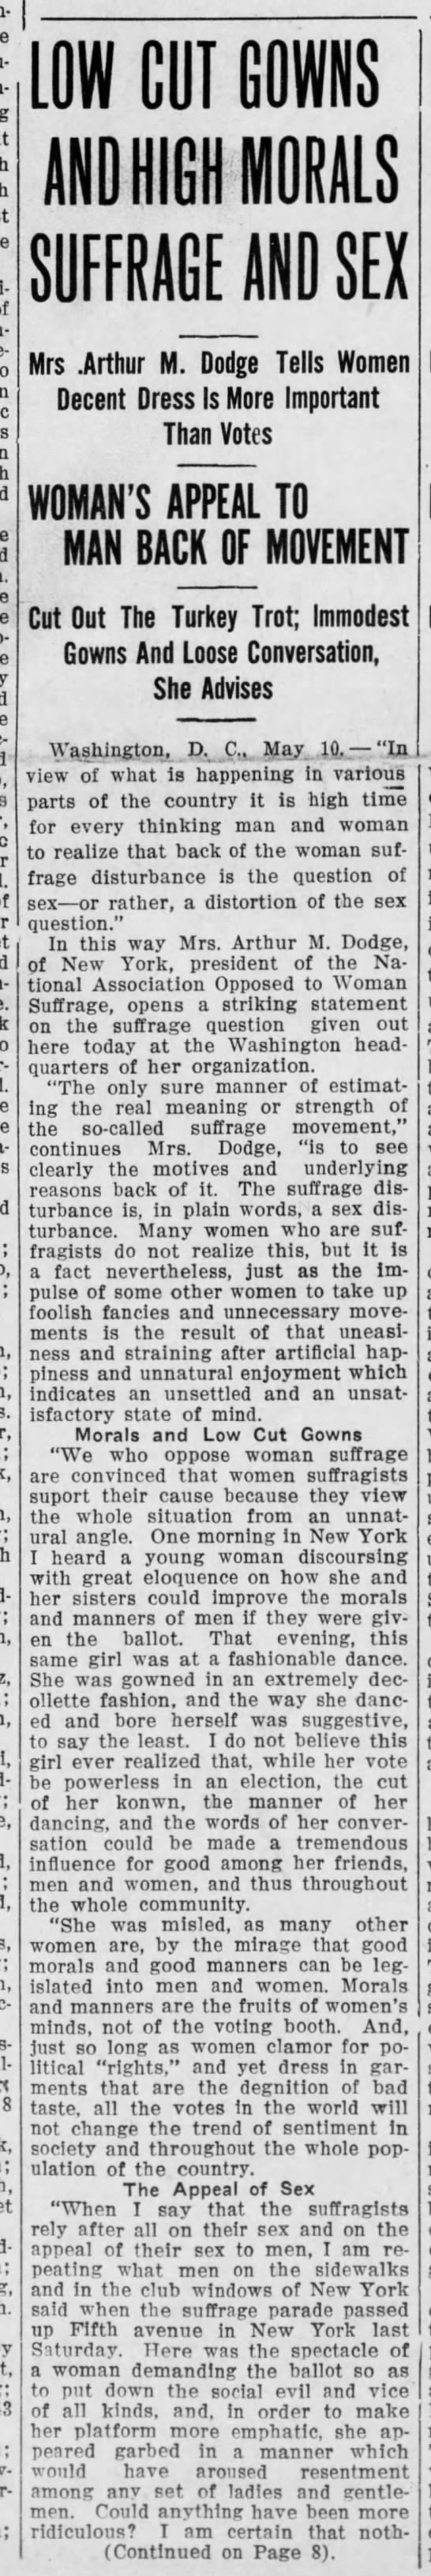 Josephine Jewell Dodge on immorality and suffrage (1913). -